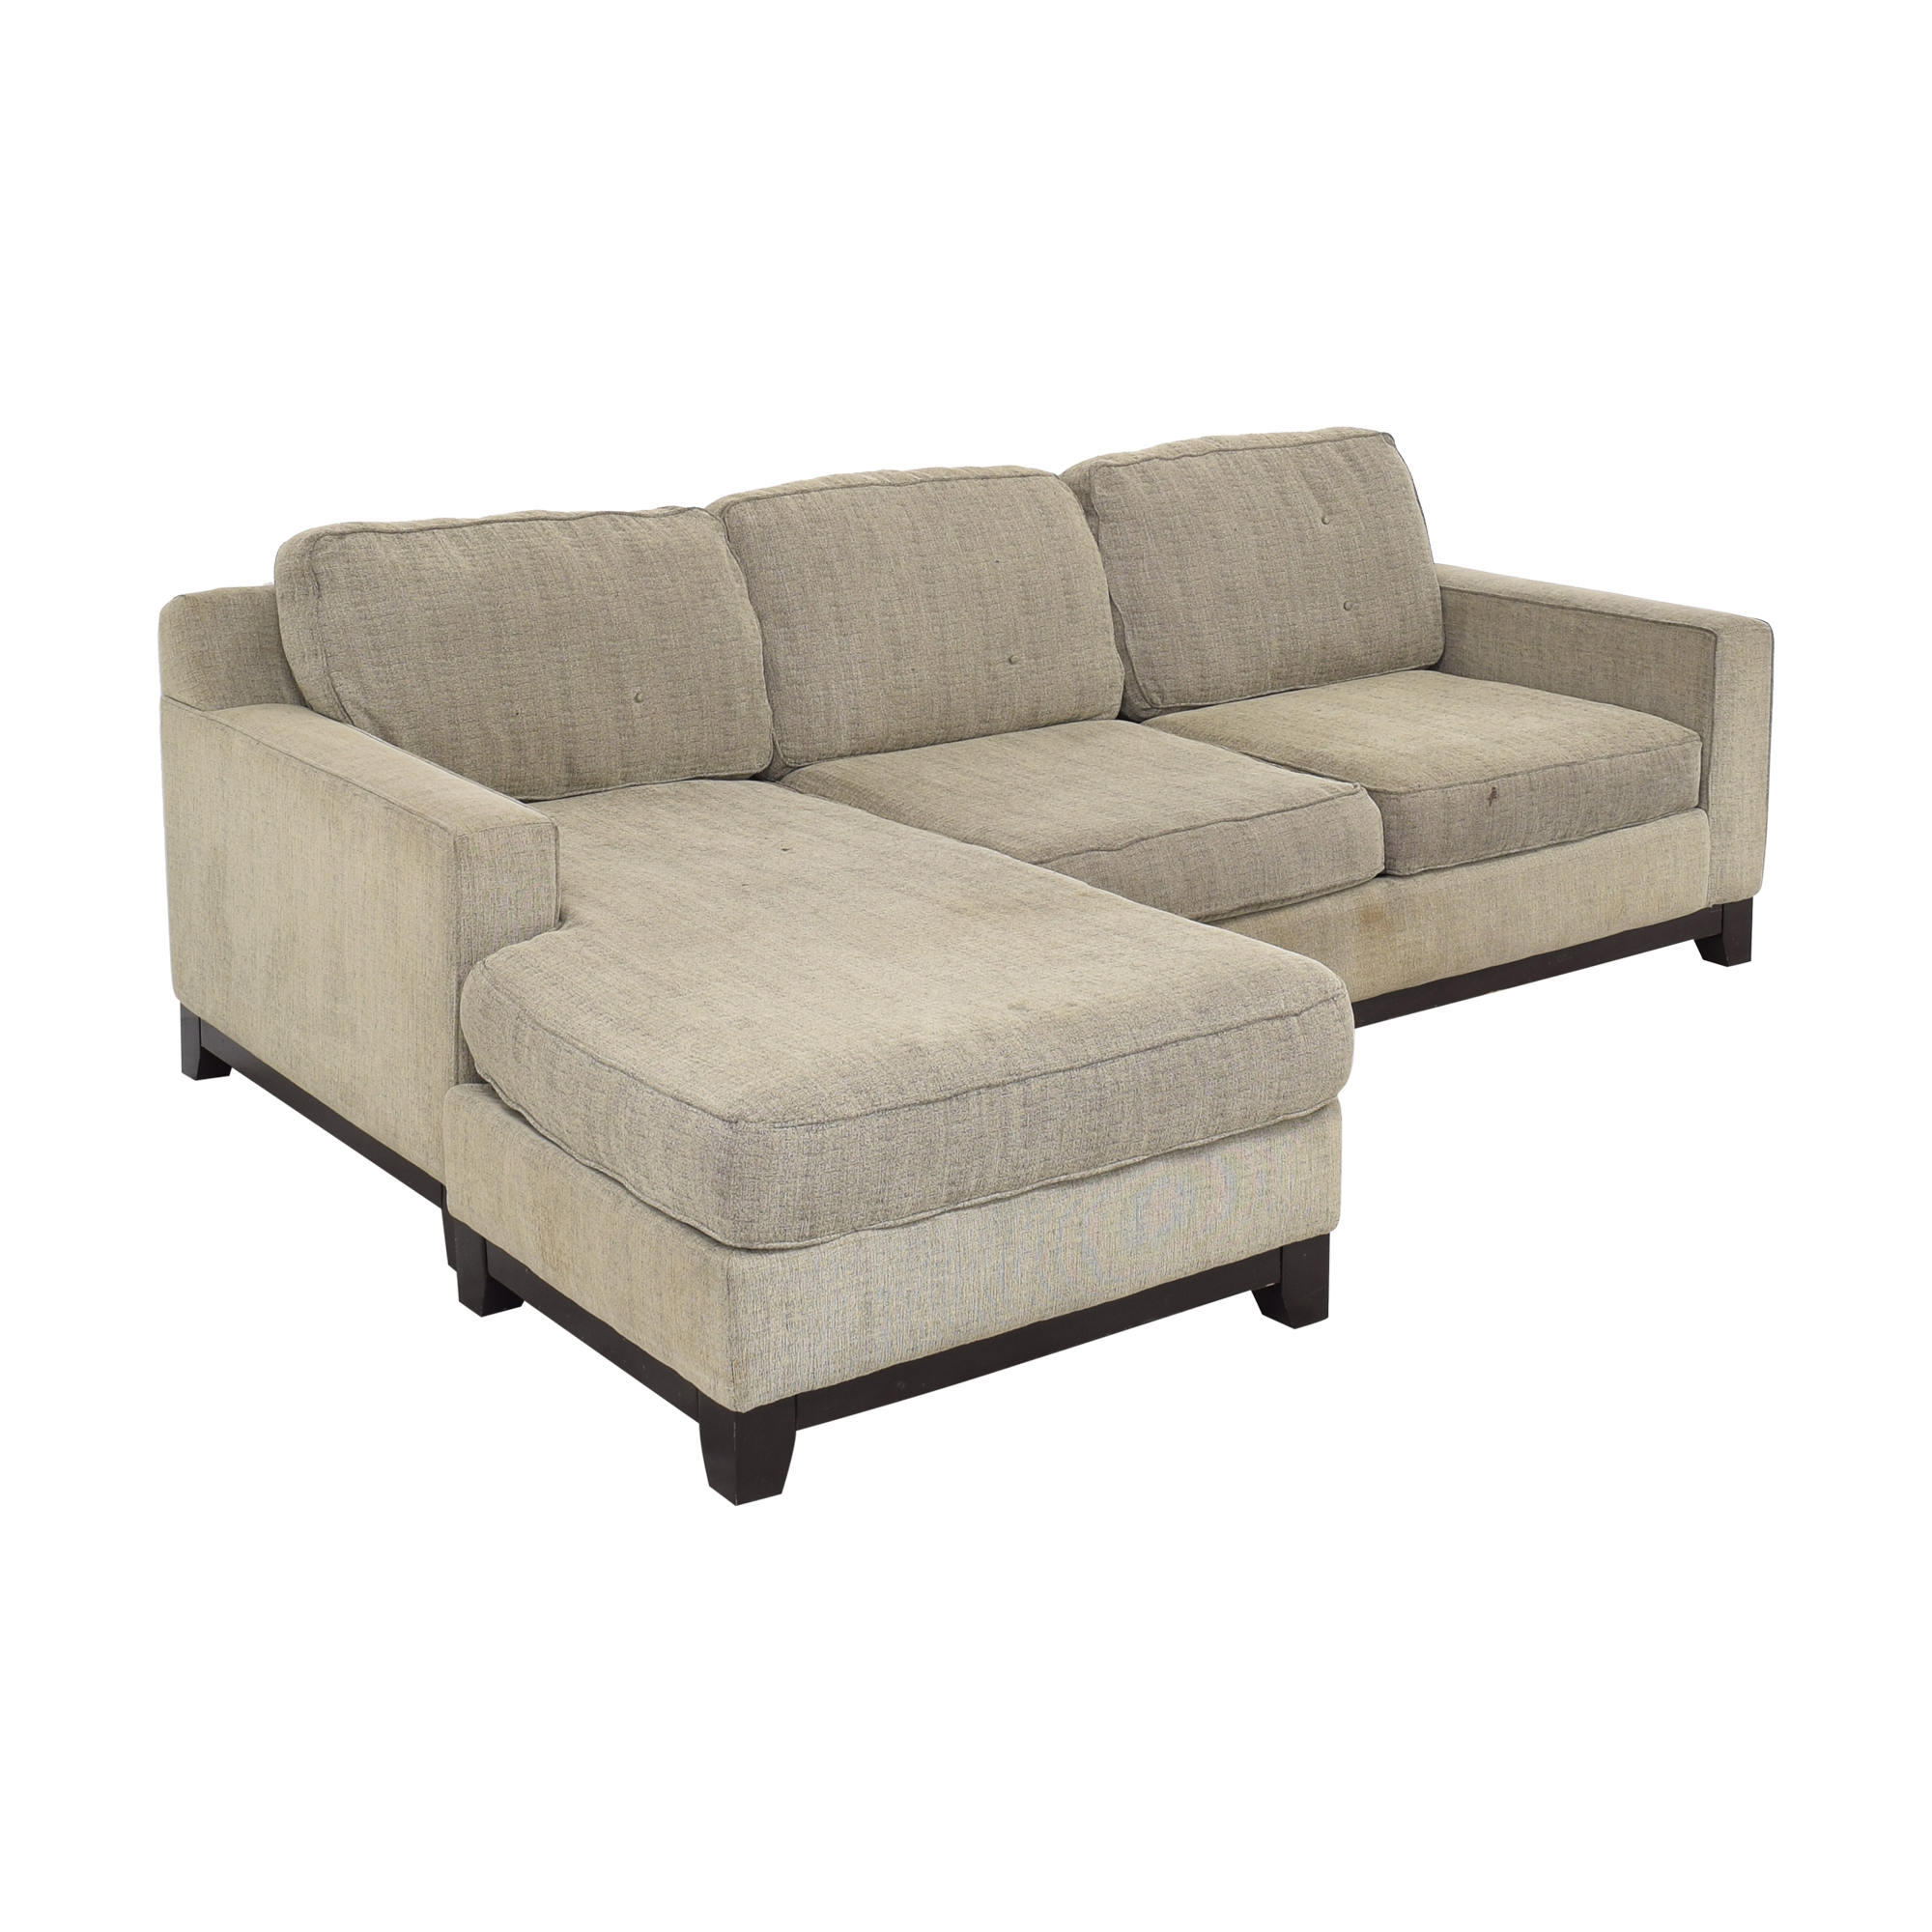 Macy's Jonathan Louis Chaise Sectional Sofa used